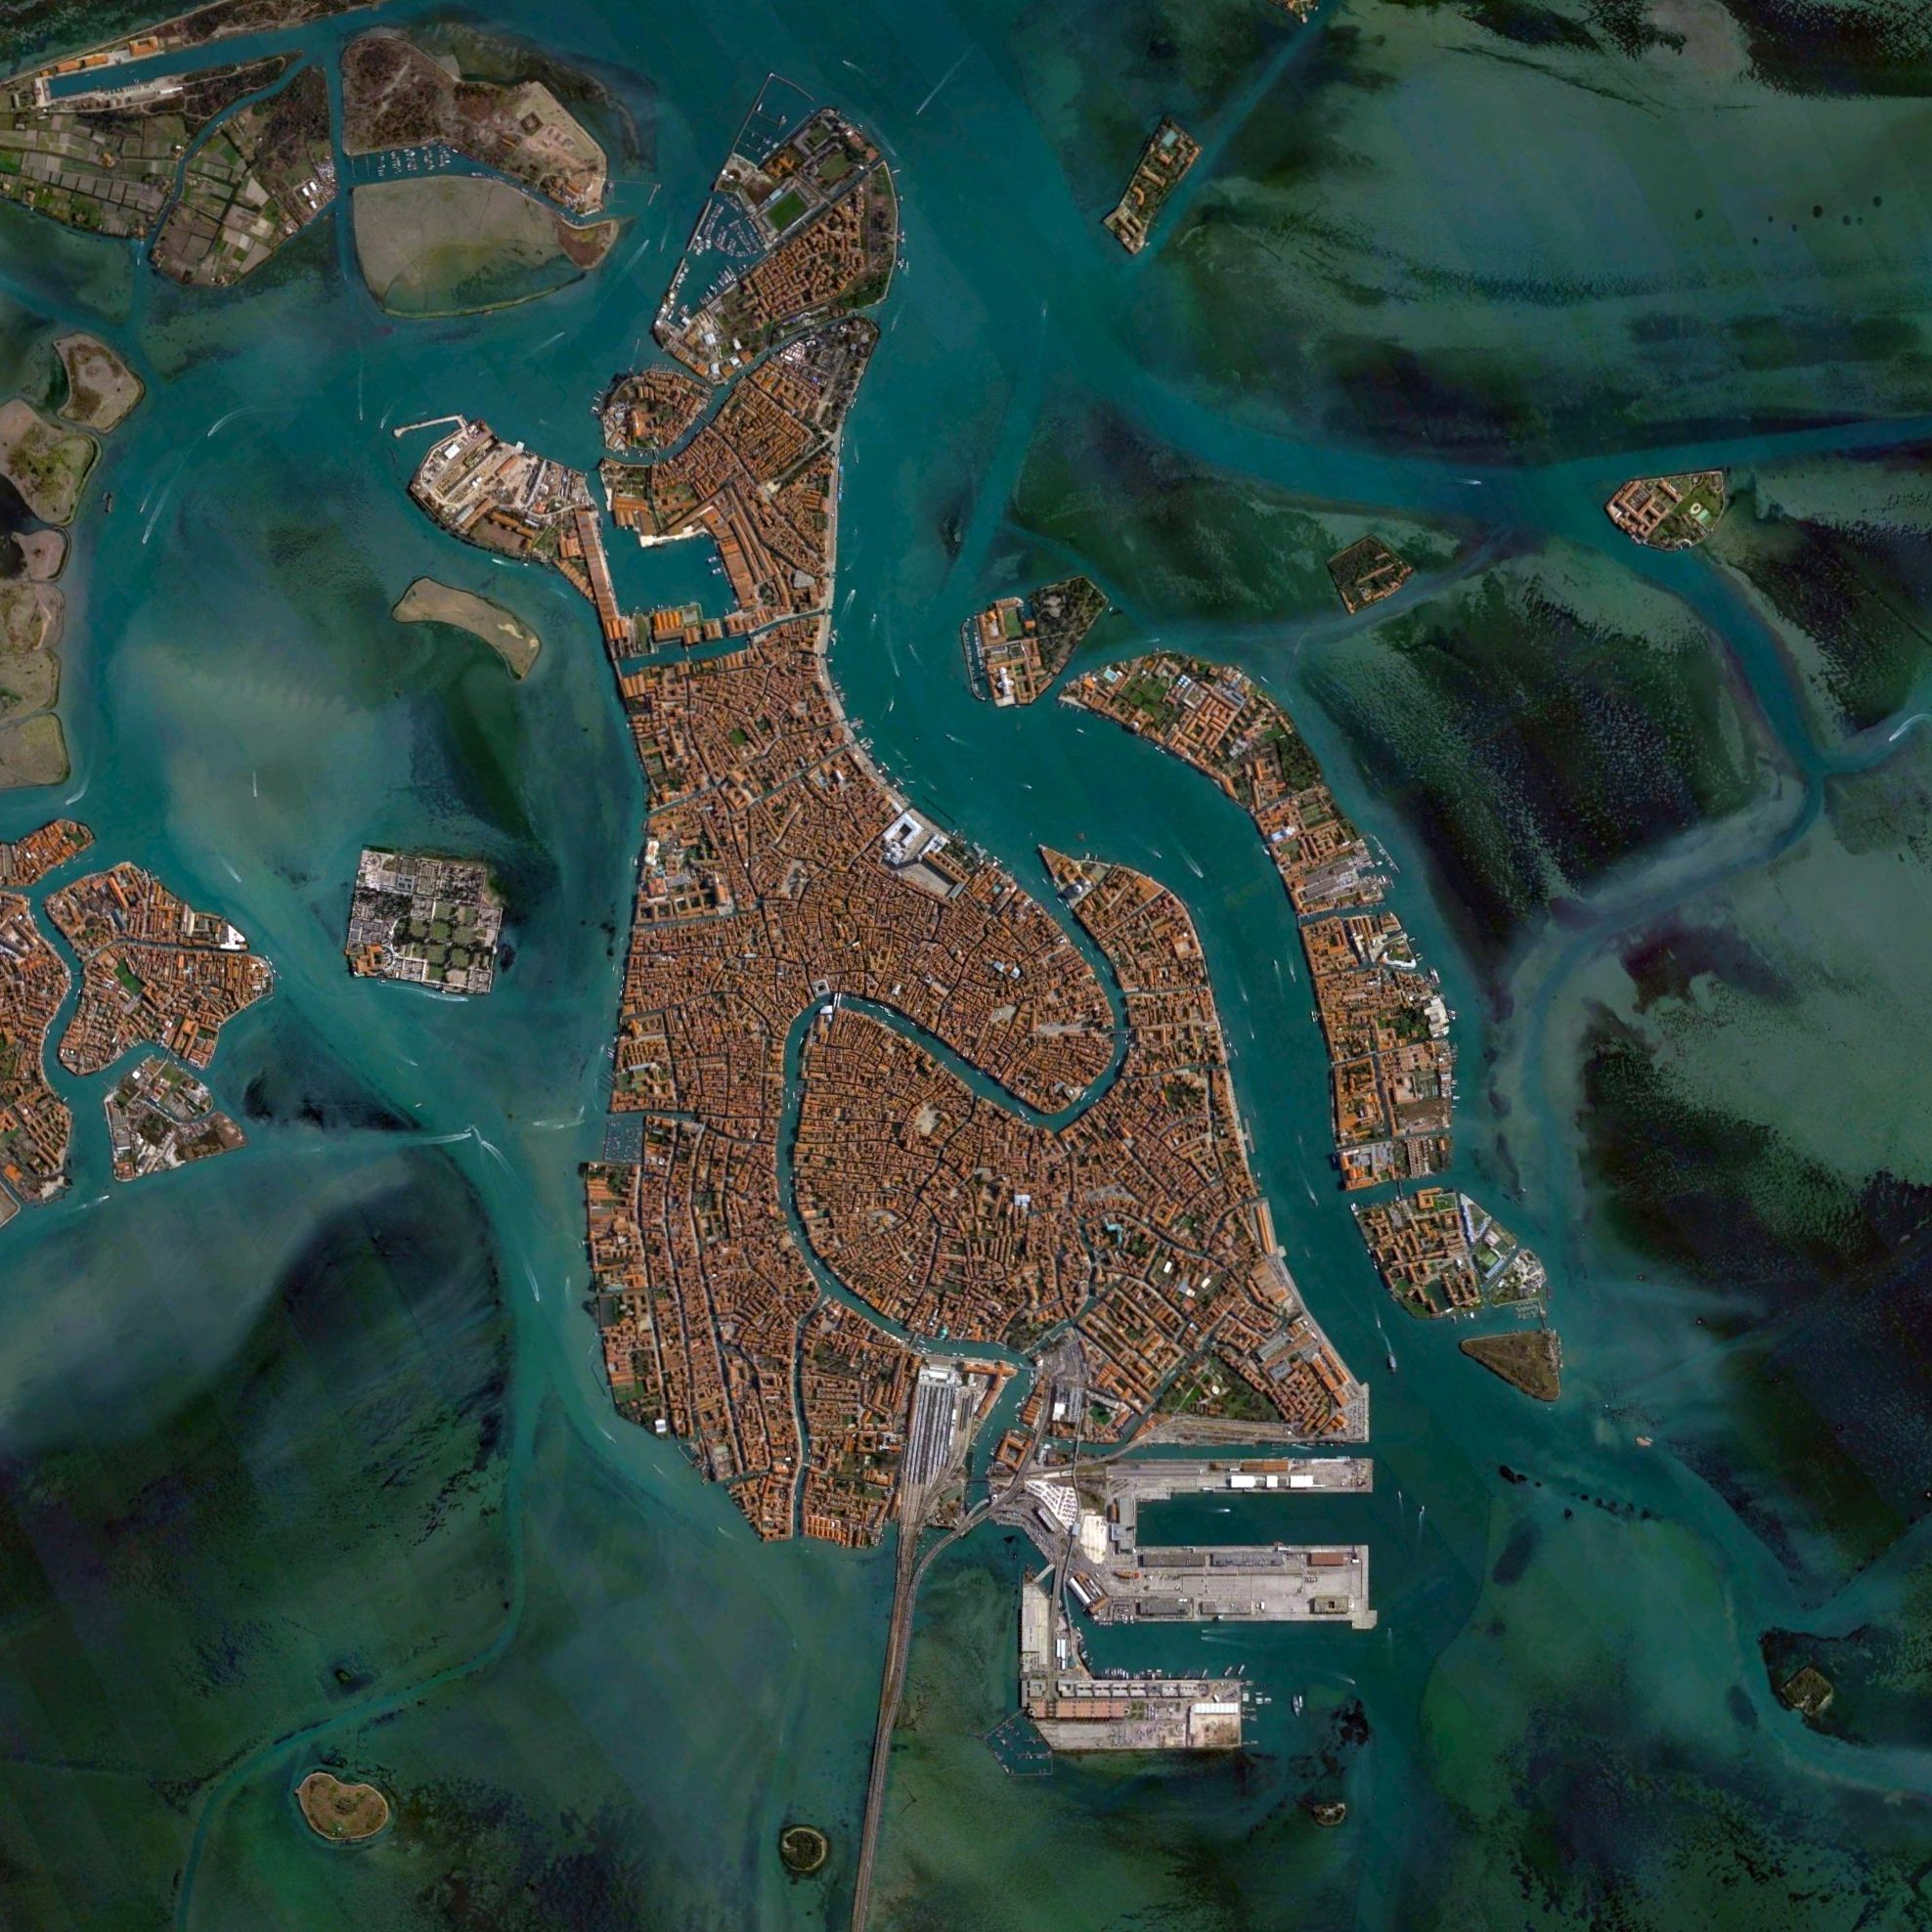 6/10/2015 Venice Venice, Italy 45°26′15″N 12°20′9″E  Venice, Italy is situated upon 118 small islands that are separated by canals and linked by bridges. With tide waters expected to rise to perilous levels in the coming decades, the city has constructed 78 giant steel gates across the three inlets through which water from the Adriatic could surge into Venice's lagoon. The panels – which weigh 300-tons and are 92ft wide and 65ft high - are fixed to massive concrete bases dug into the…